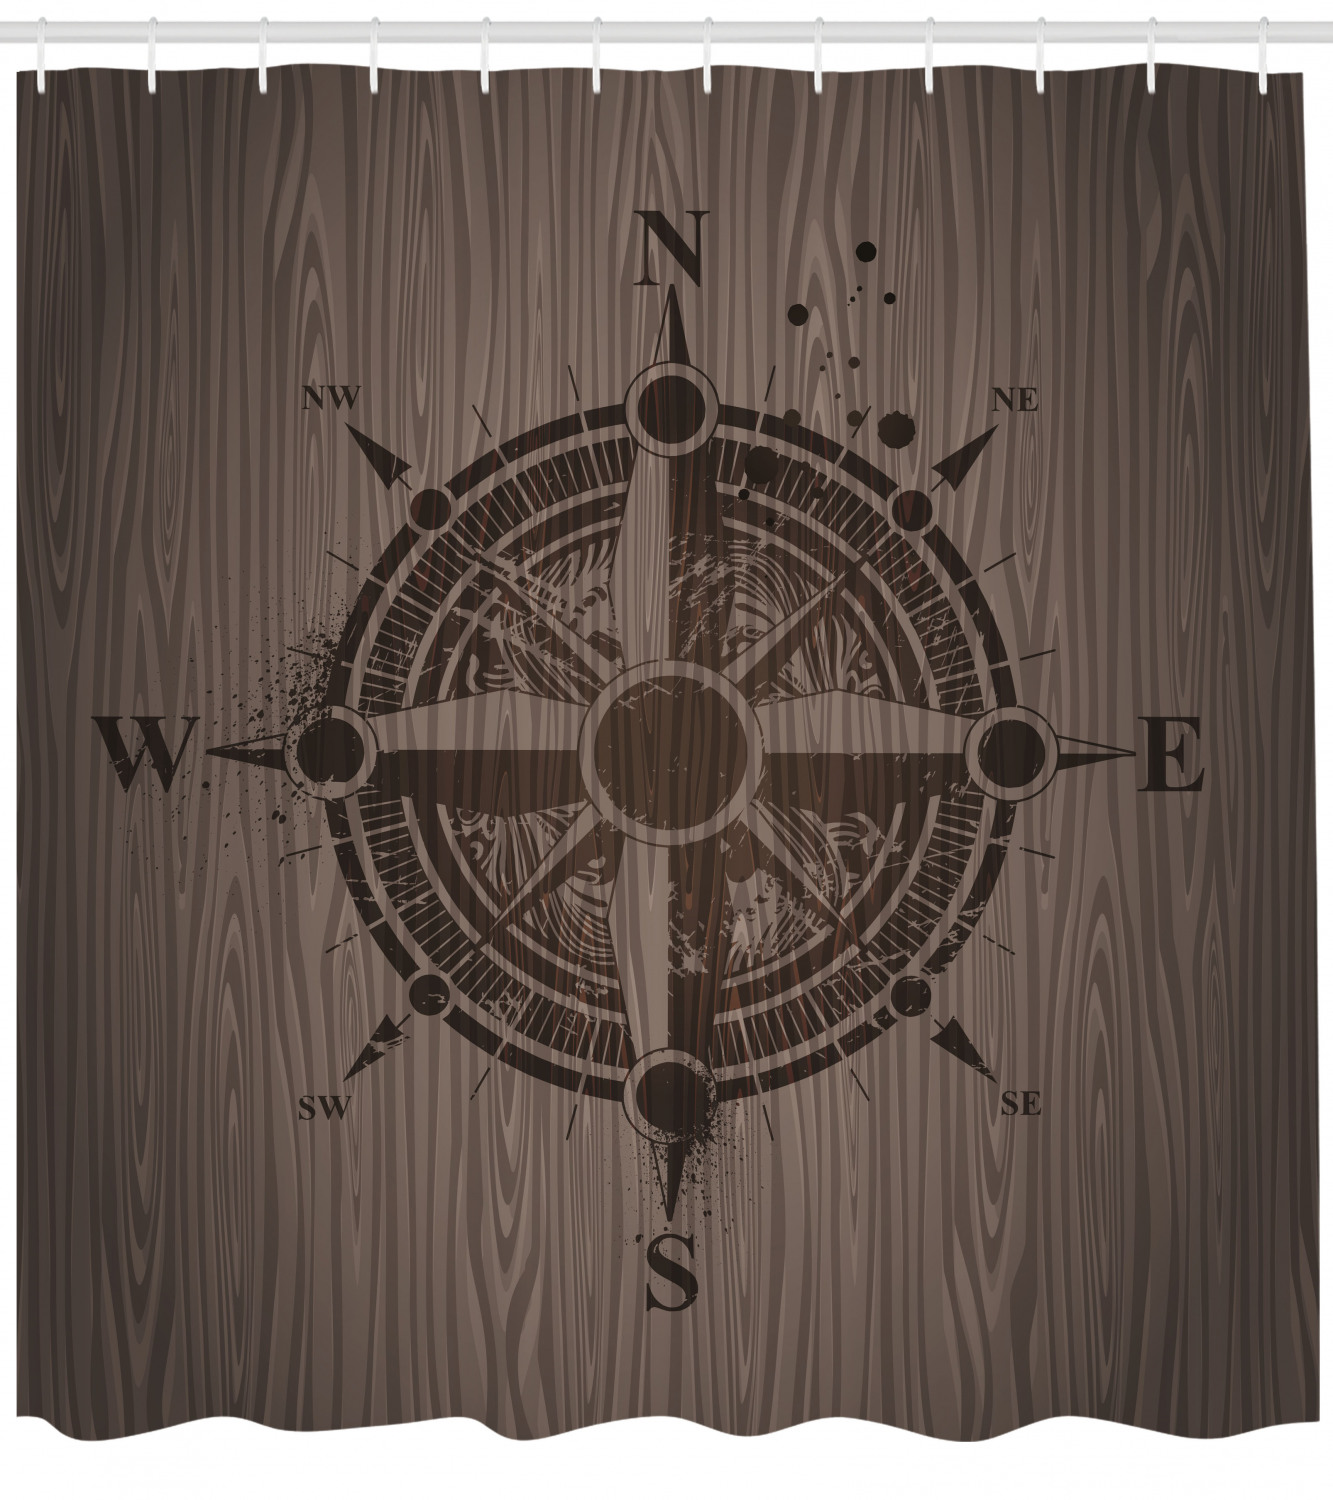 Compass Shower Curtain Drawing Of A Sailing Compass On A Wooden Surface In Computer Generated Art Fabric Bathroom Set With Hooks Umber Dark Brown